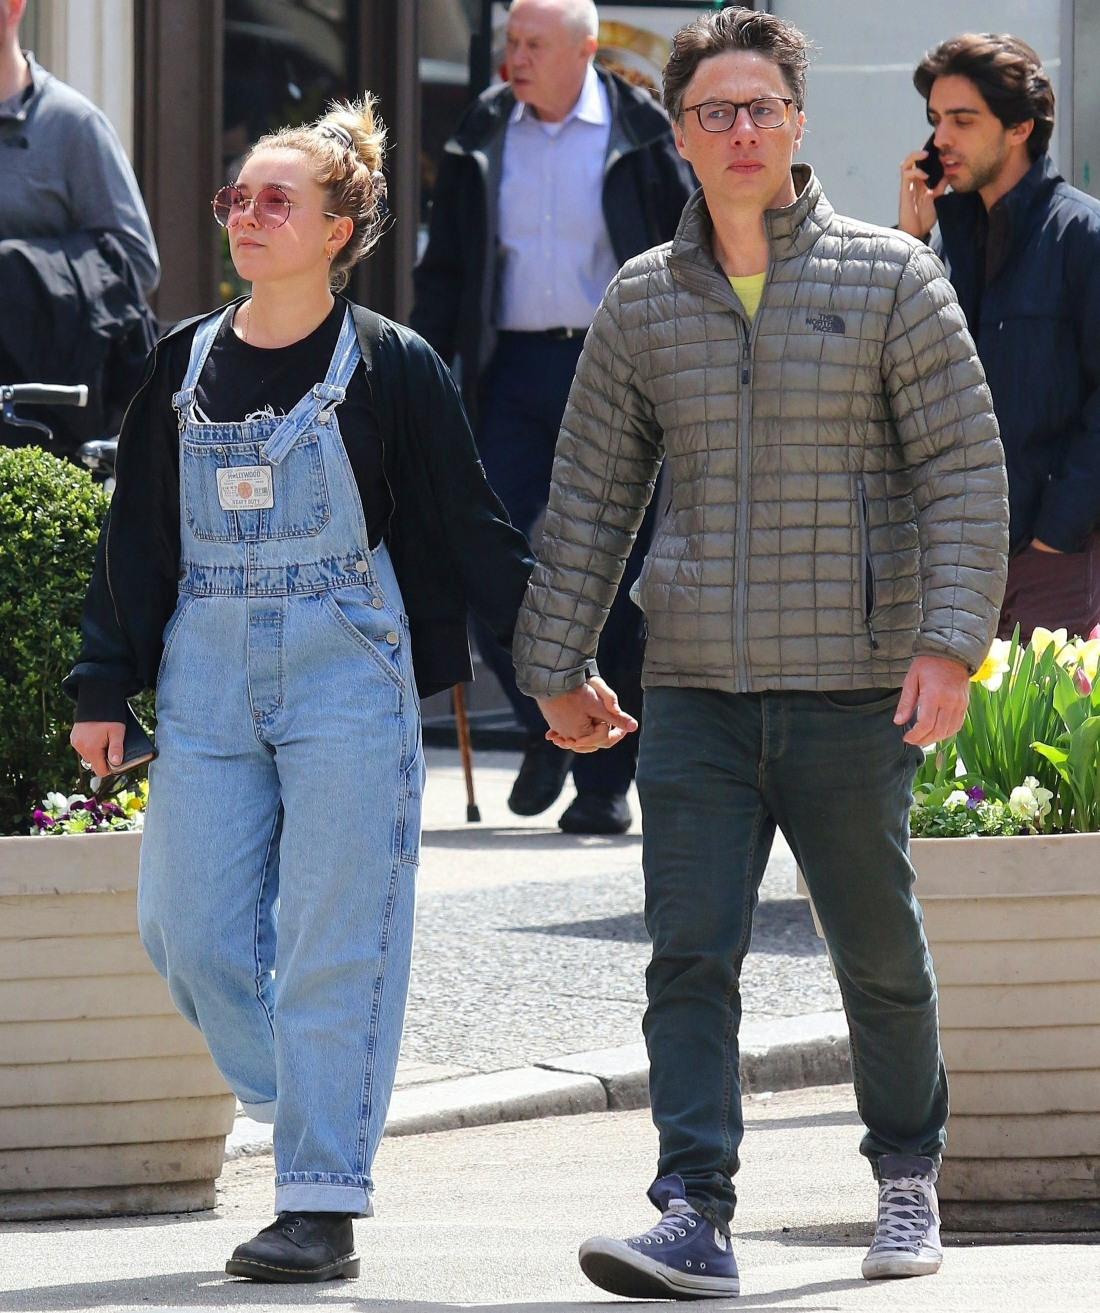 Zach Braff spotted hand-in-hand with a mystery girl in NYC!